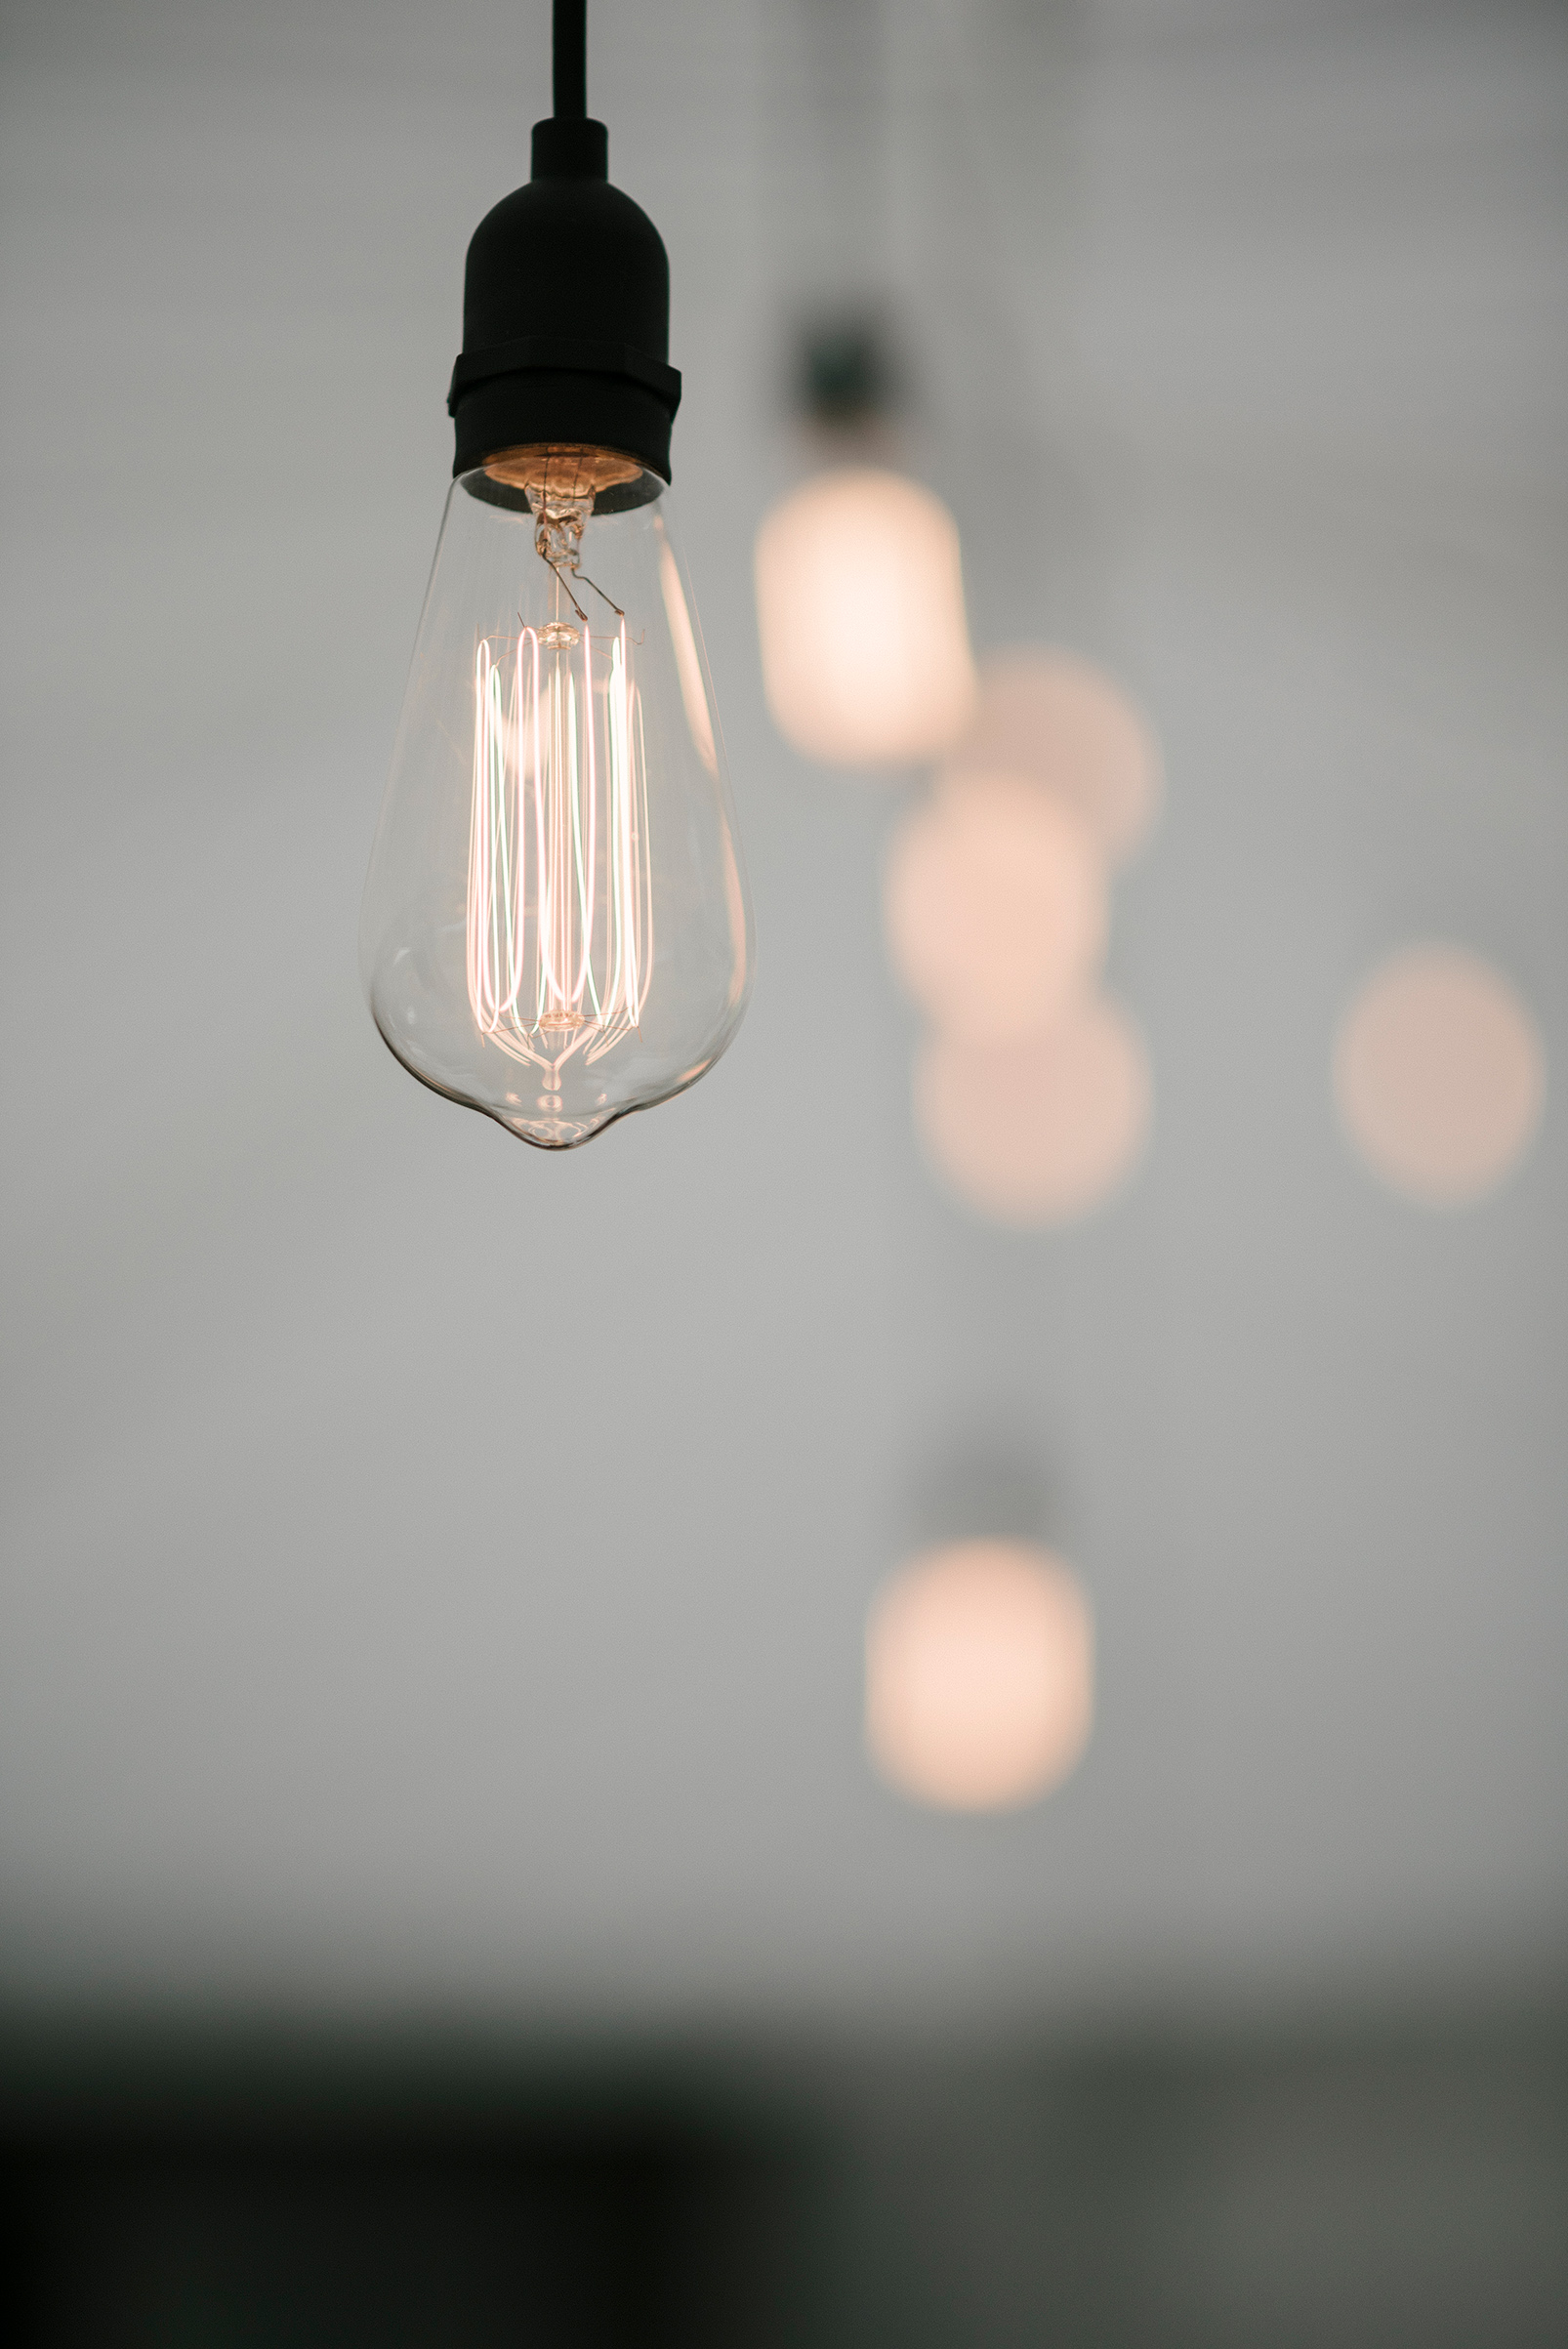 Festoon light Edison bulb